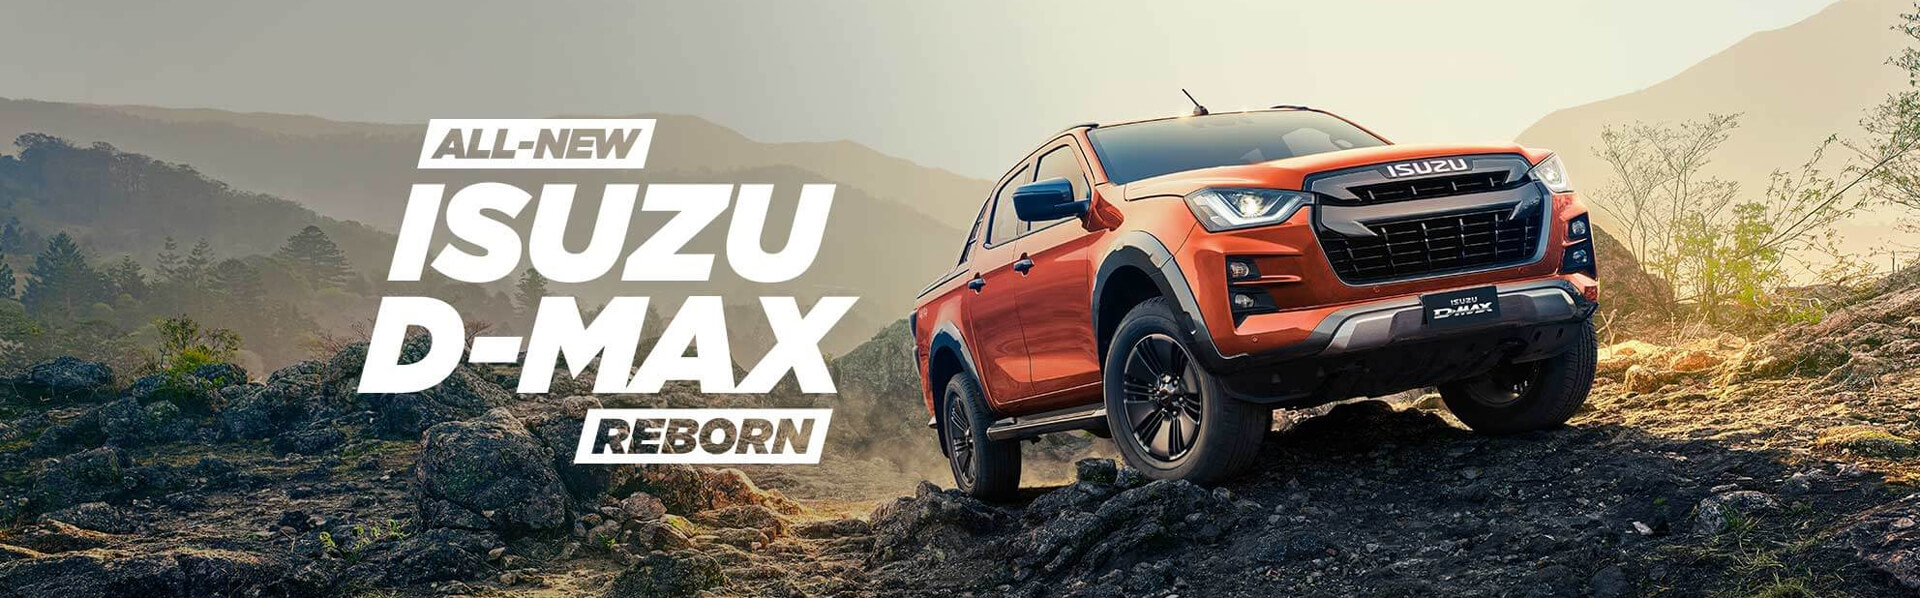 All-New Isuzu D-MAX